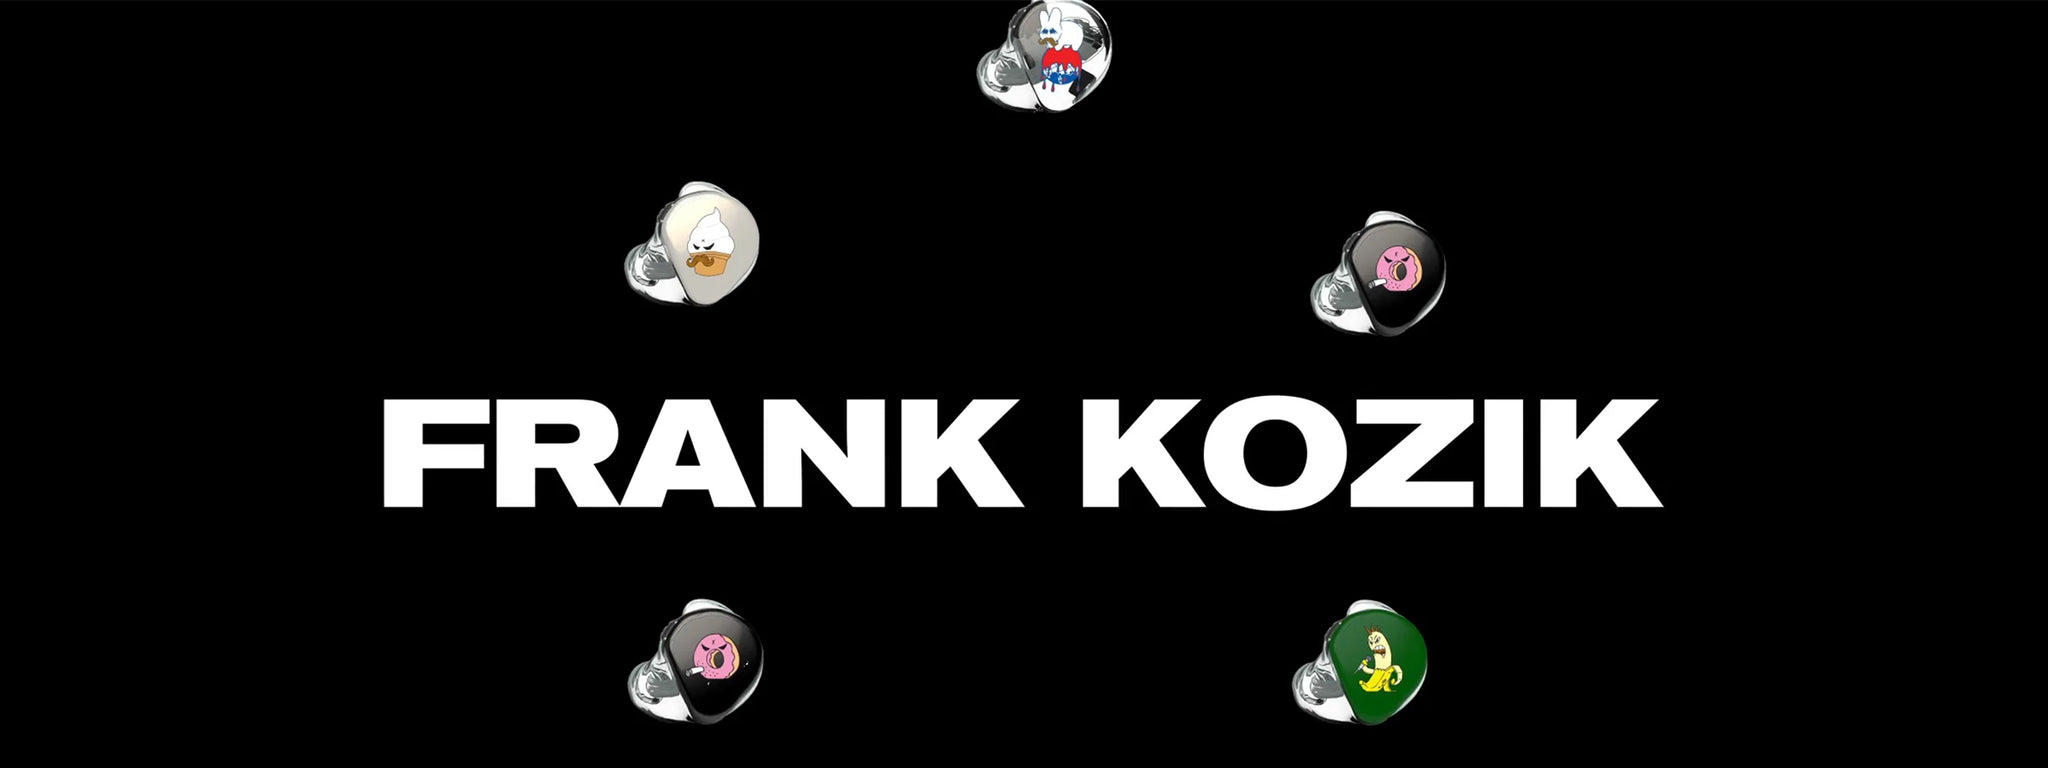 Best in Craft: Frank Kozik